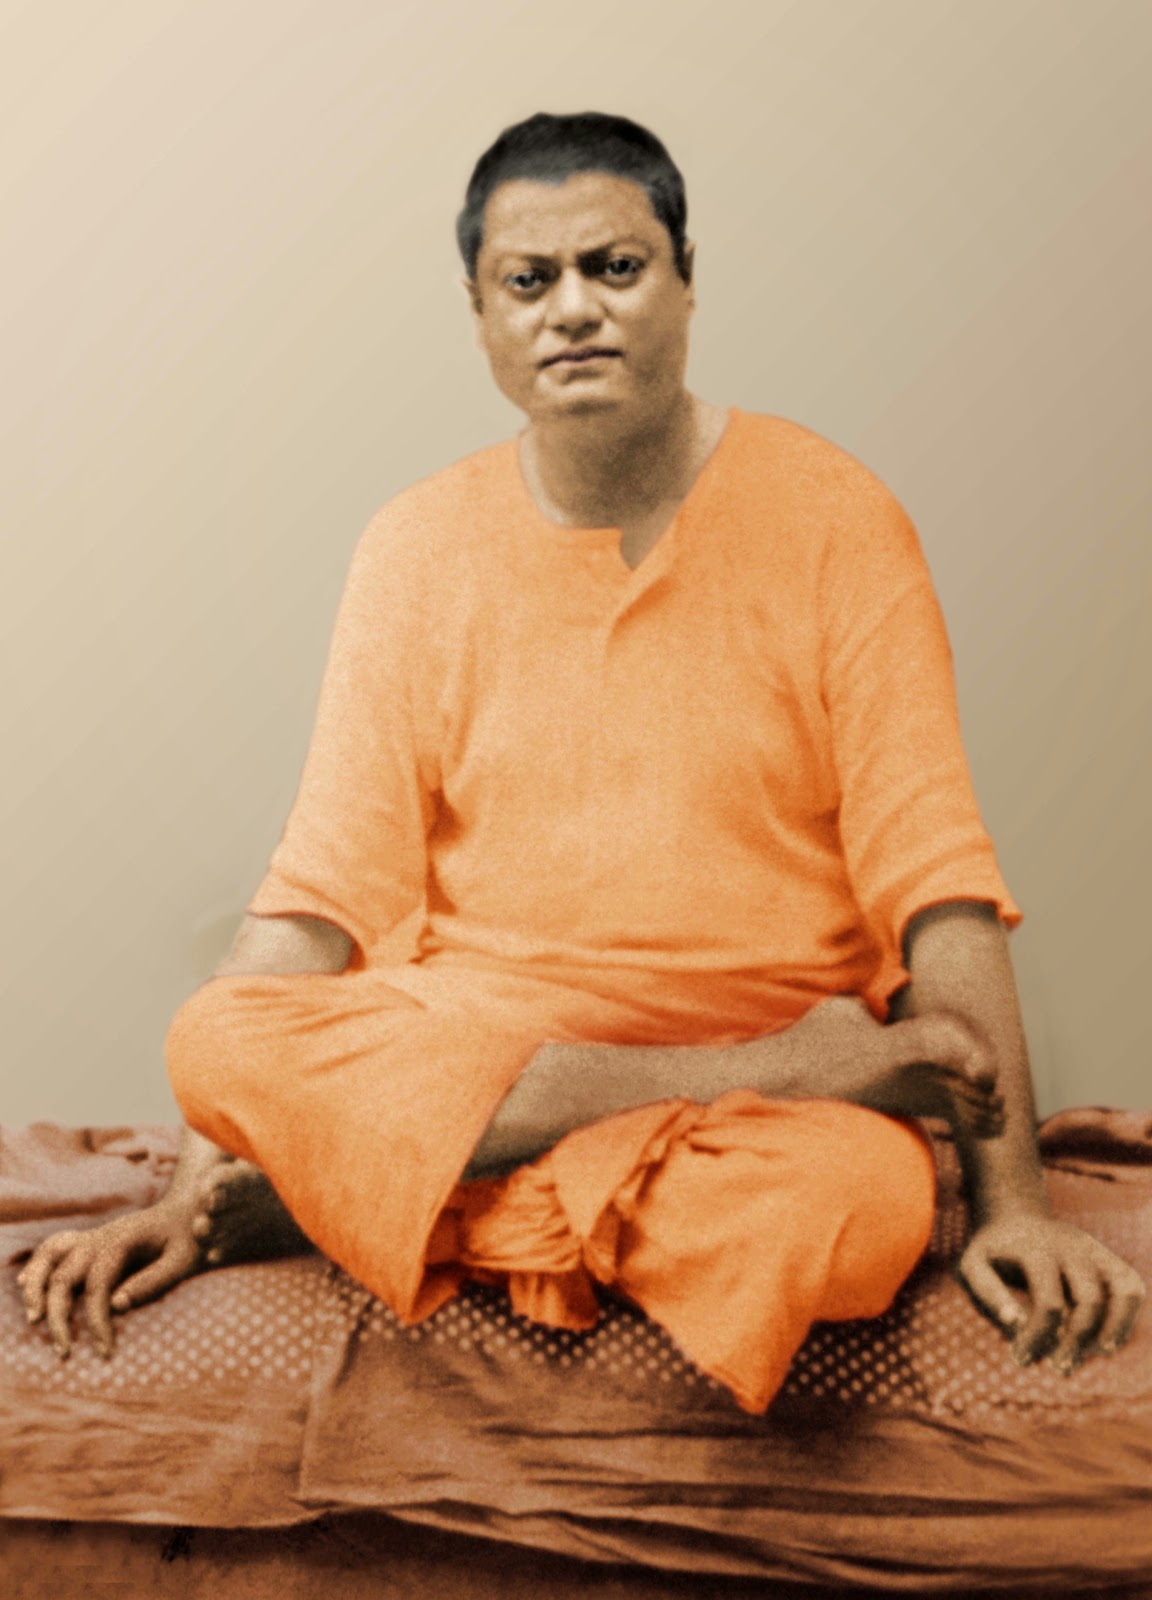 humanistic philosophy of swami vivekananda Short essay on swami vivekananda - receive the required coursework here and forget about your fears spend a little time and money to get the essay you could not even.